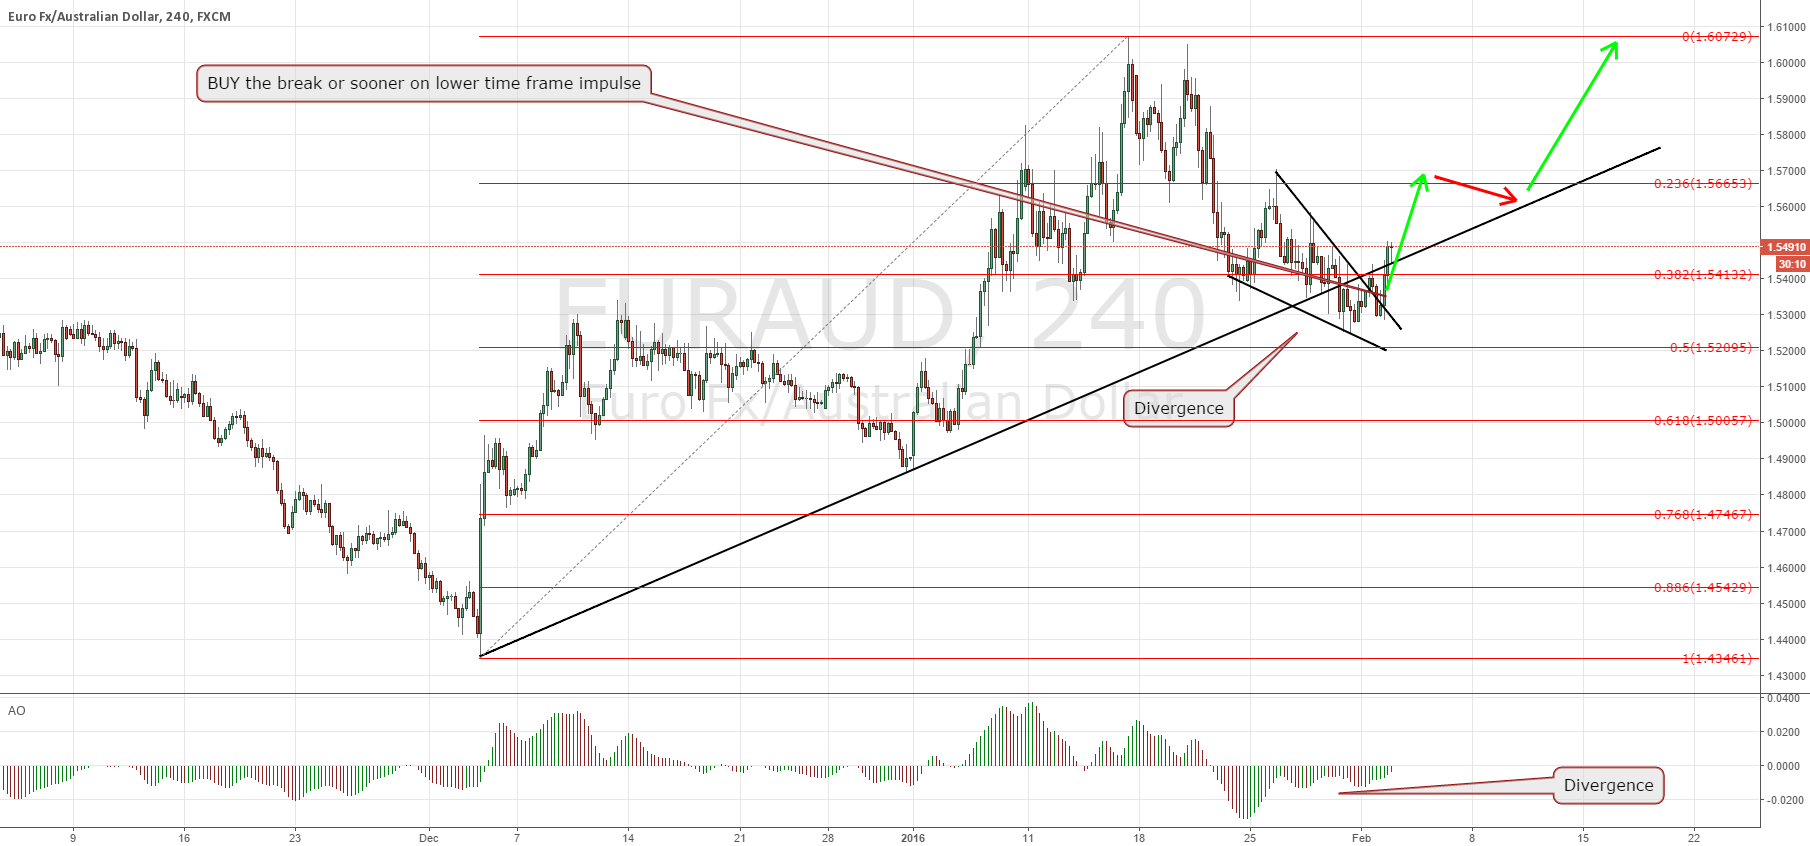 EURAUD another clear great BUY trade